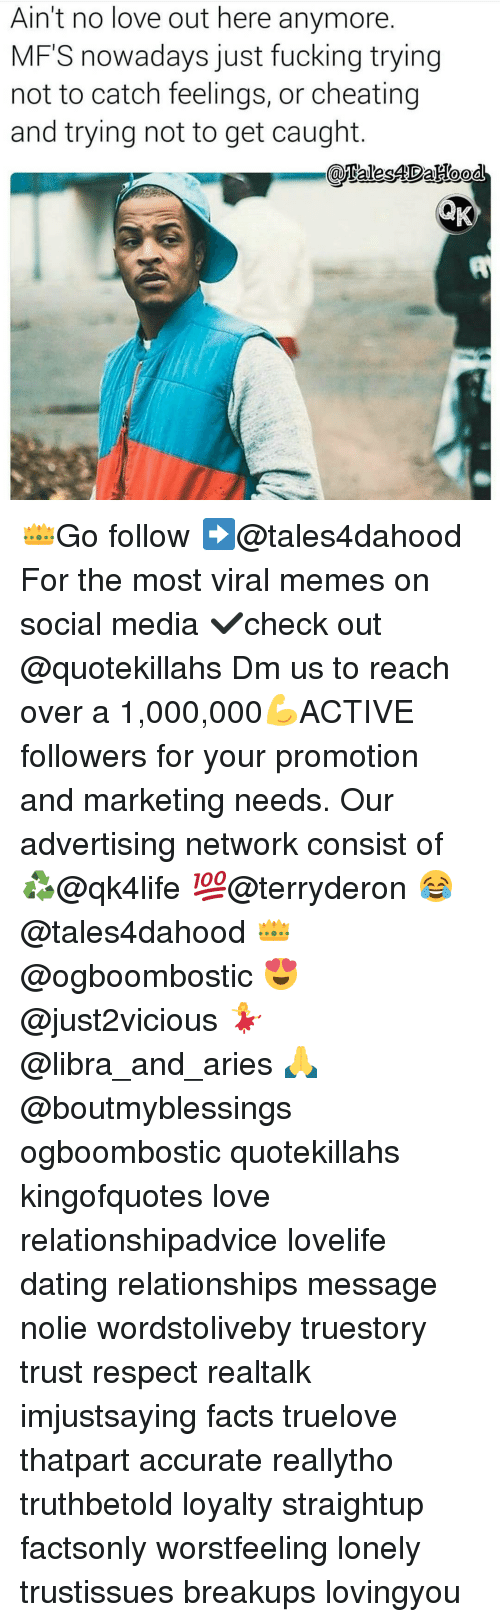 Advertise Network: Ain't no love out here anymore.  MFS nowadays just fucking trying  not to catch feelings, or cheating  and trying not to get caught  AND 👑Go follow ➡@tales4dahood For the most viral memes on social media ✔check out @quotekillahs Dm us to reach over a 1,000,000💪ACTIVE followers for your promotion and marketing needs. Our advertising network consist of ♻@qk4life 💯@terryderon 😂@tales4dahood 👑@ogboombostic 😍@just2vicious 💃@libra_and_aries 🙏@boutmyblessings ogboombostic quotekillahs kingofquotes love relationshipadvice lovelife dating relationships message nolie wordstoliveby truestory trust respect realtalk imjustsaying facts truelove thatpart accurate reallytho truthbetold loyalty straightup factsonly worstfeeling lonely trustissues breakups lovingyou